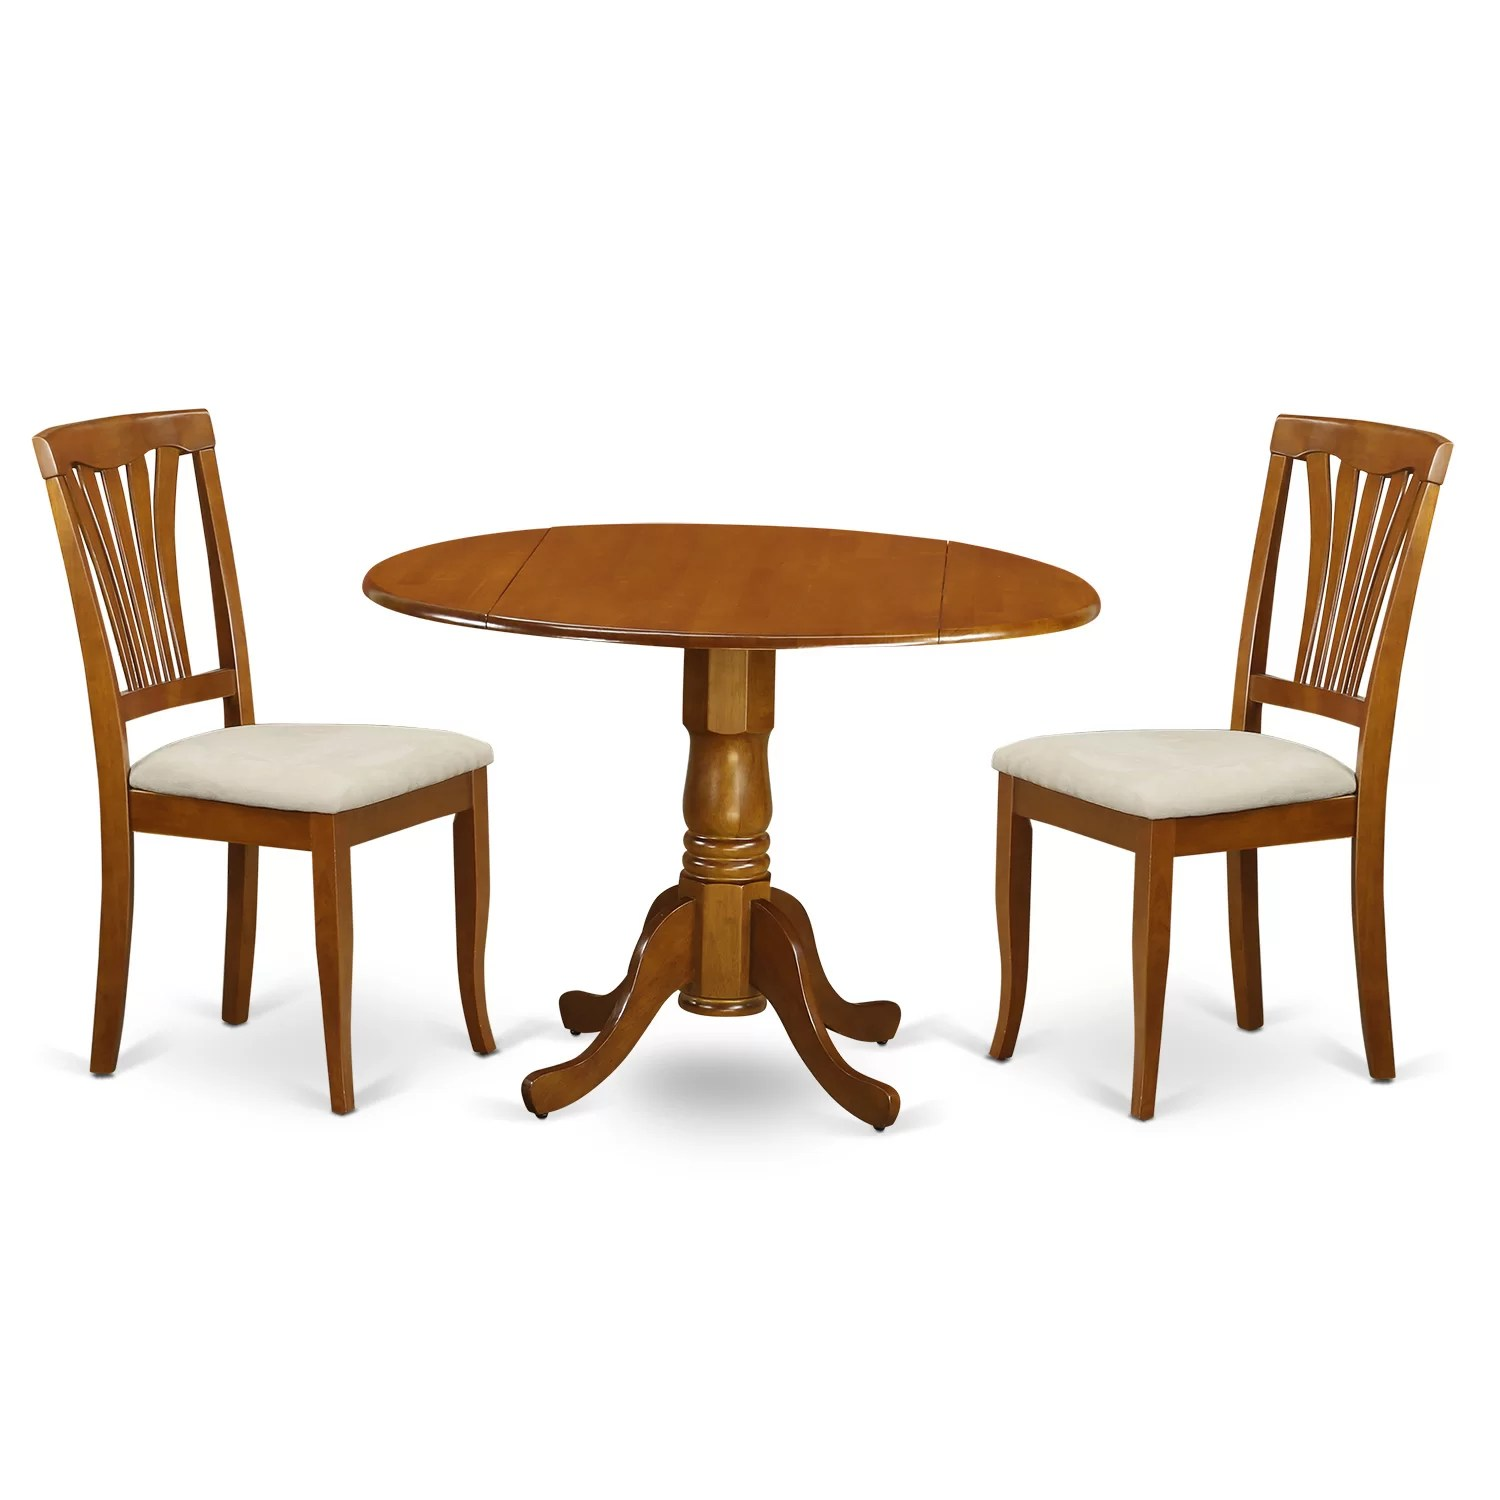 dining table and chairs dublin batman car chair wooden importers 3 piece set ebay